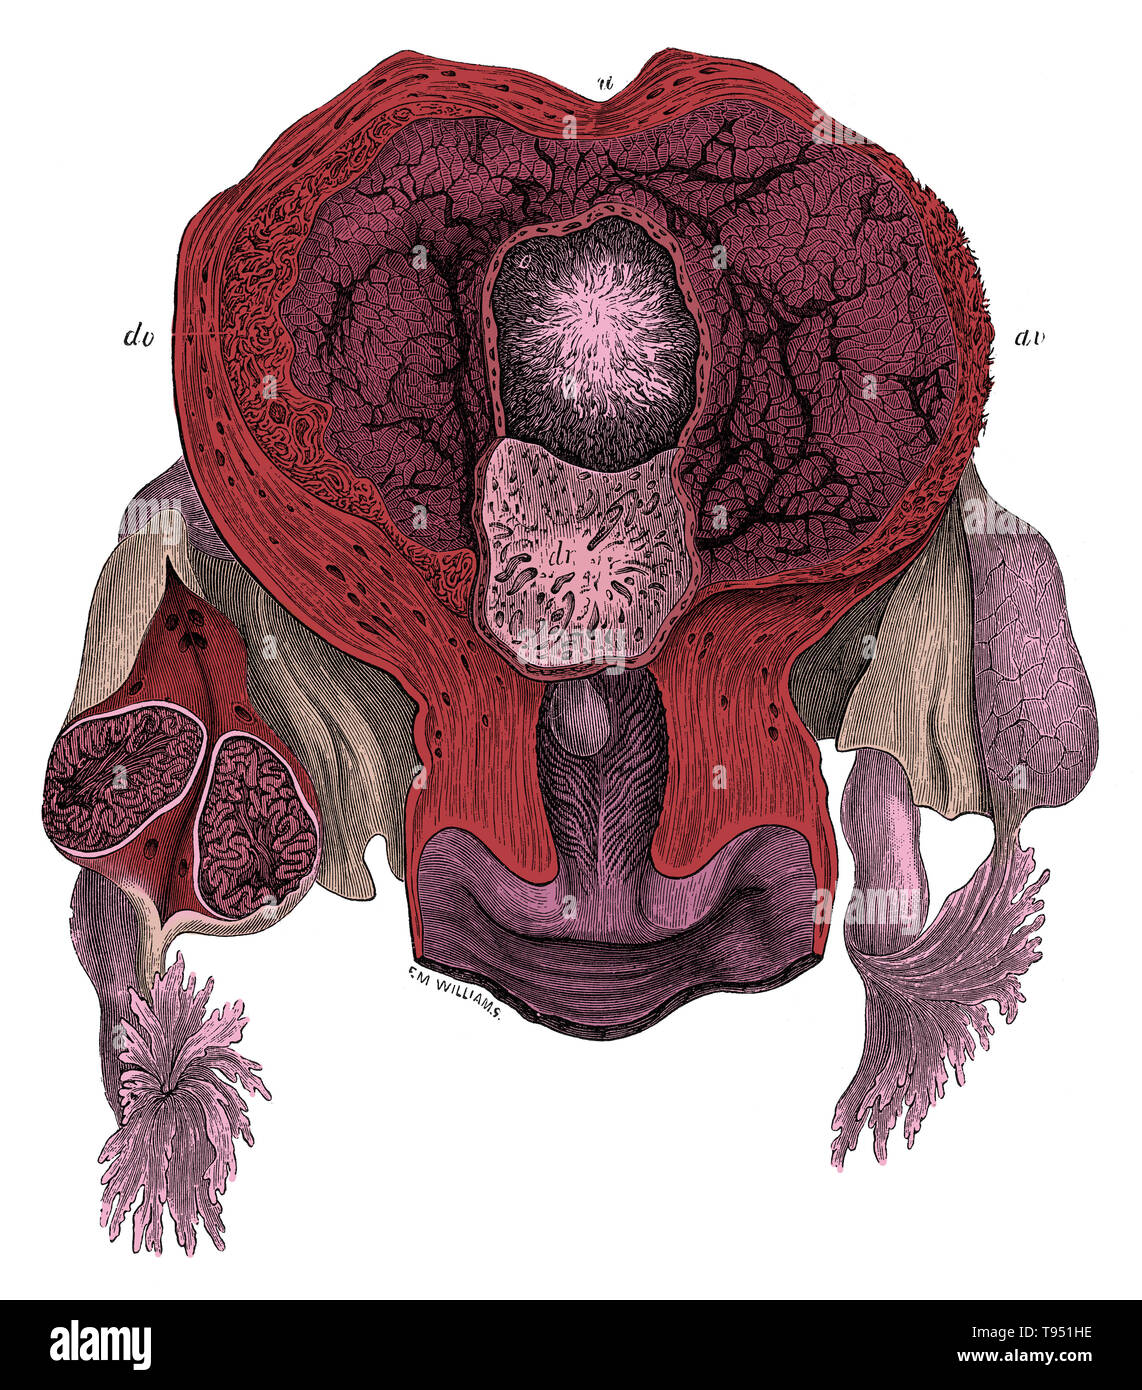 View of the interior of the human gravid uterus at the 25th day. u, uterine wall; o, ovum with villous chorion; dv, decidua vera; dr, decidua reflexa, divided around the margin of the ovum, and turned down so as to expose its pitted surface, which has been removed from the ovum. The right ovary is divided, and shows in section the plicated condition of the early corpus luteum. Jones Quain (November, 1796 - January 31, 1865) was an Irish anatomist, professor of Anatomy and Physiology in the University of London, and author of Elements of Anatomy.  This image has been colorized. - Stock Image